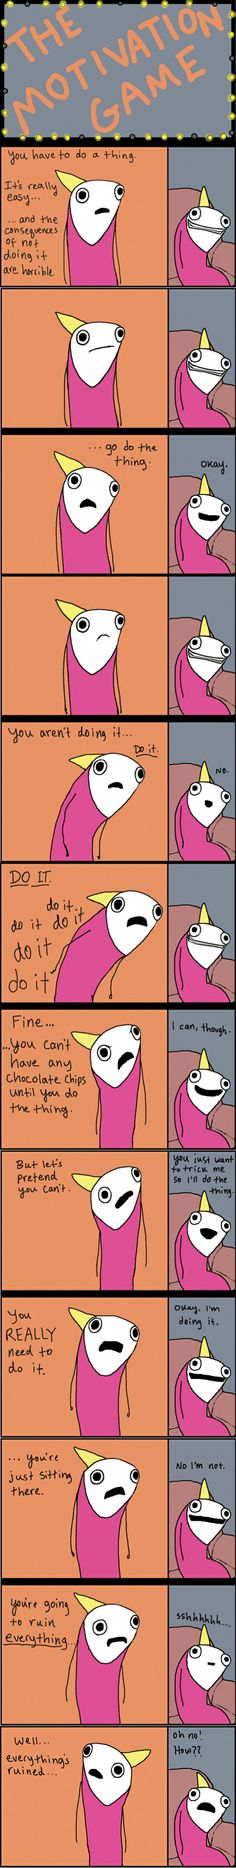 The Motivation Game by Hyperbole and a Half